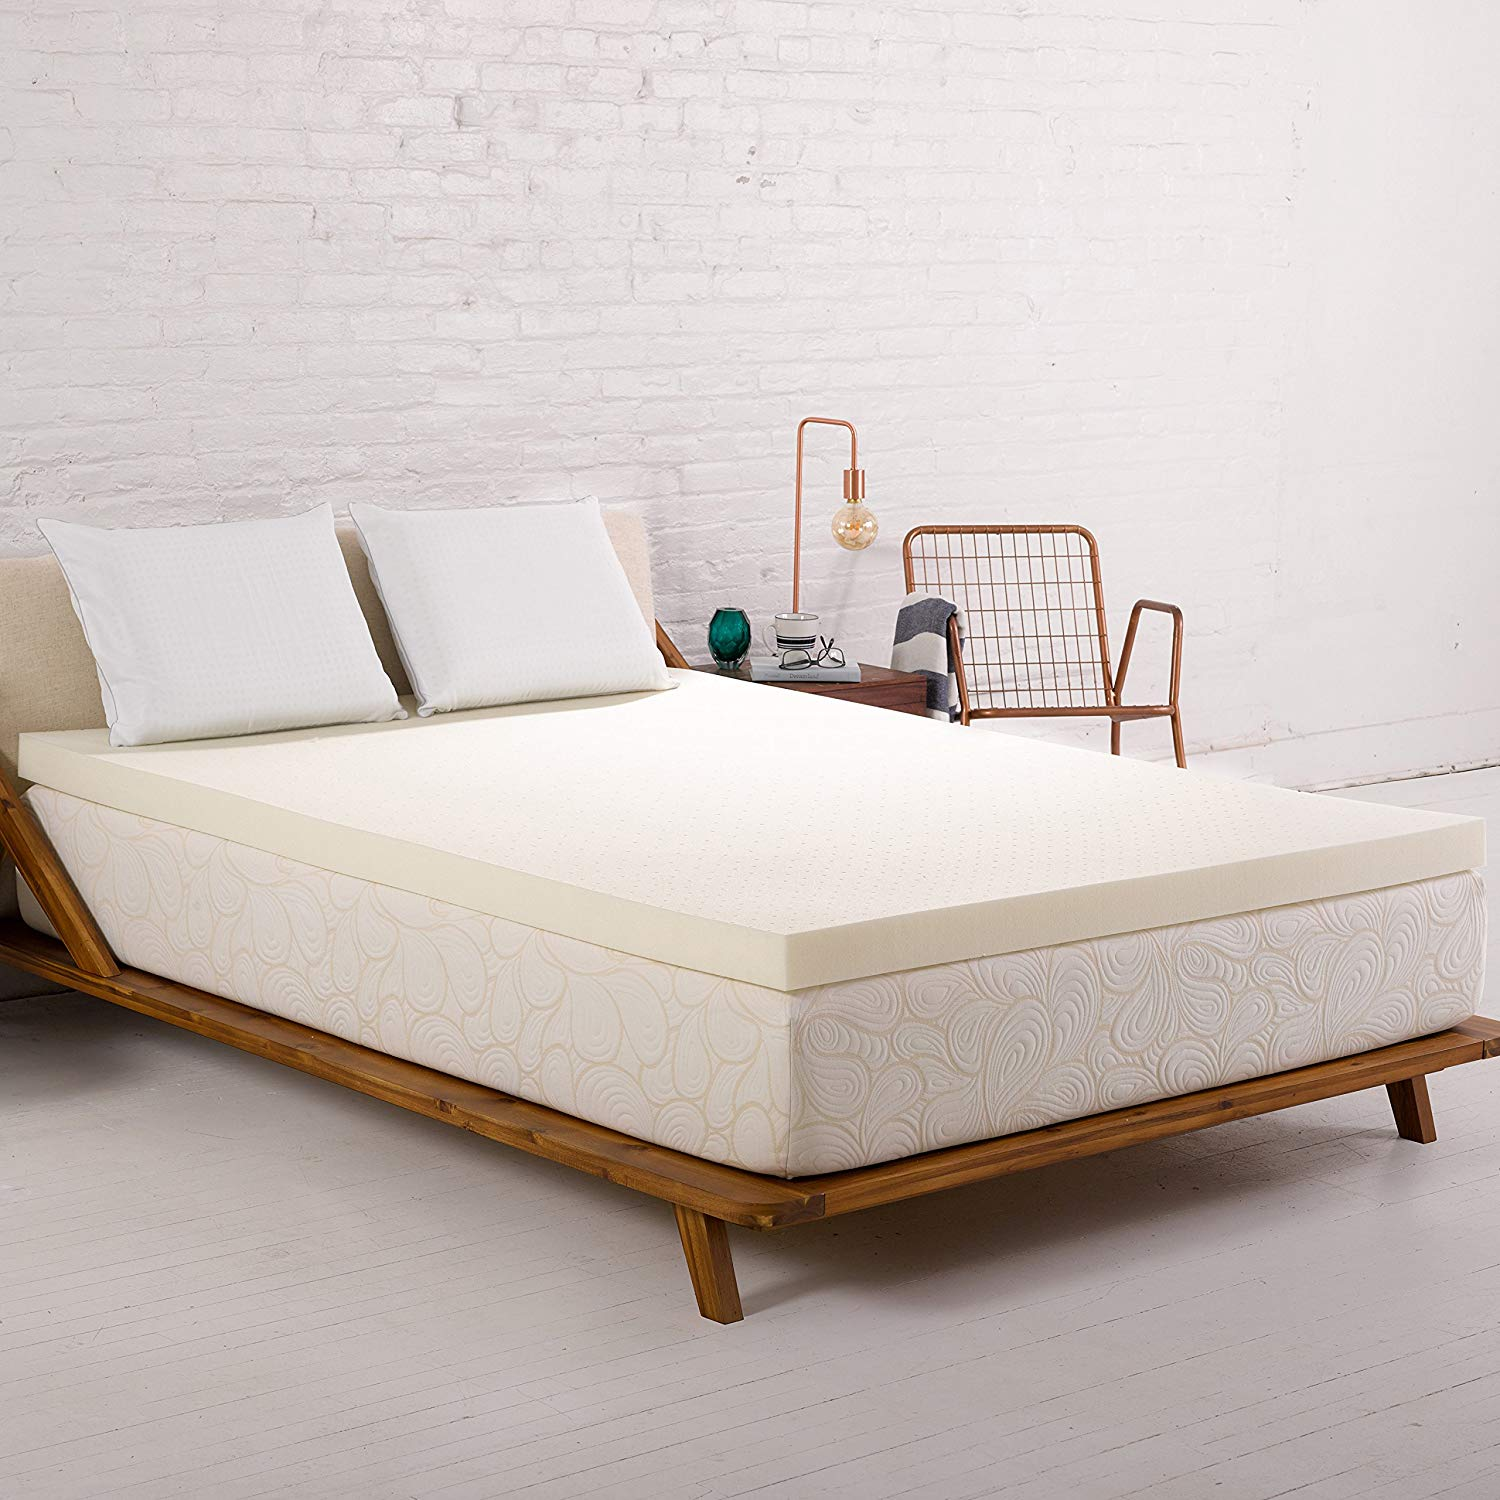 Rv Mattress Replacement Read This Before Buying One Rvshare Com